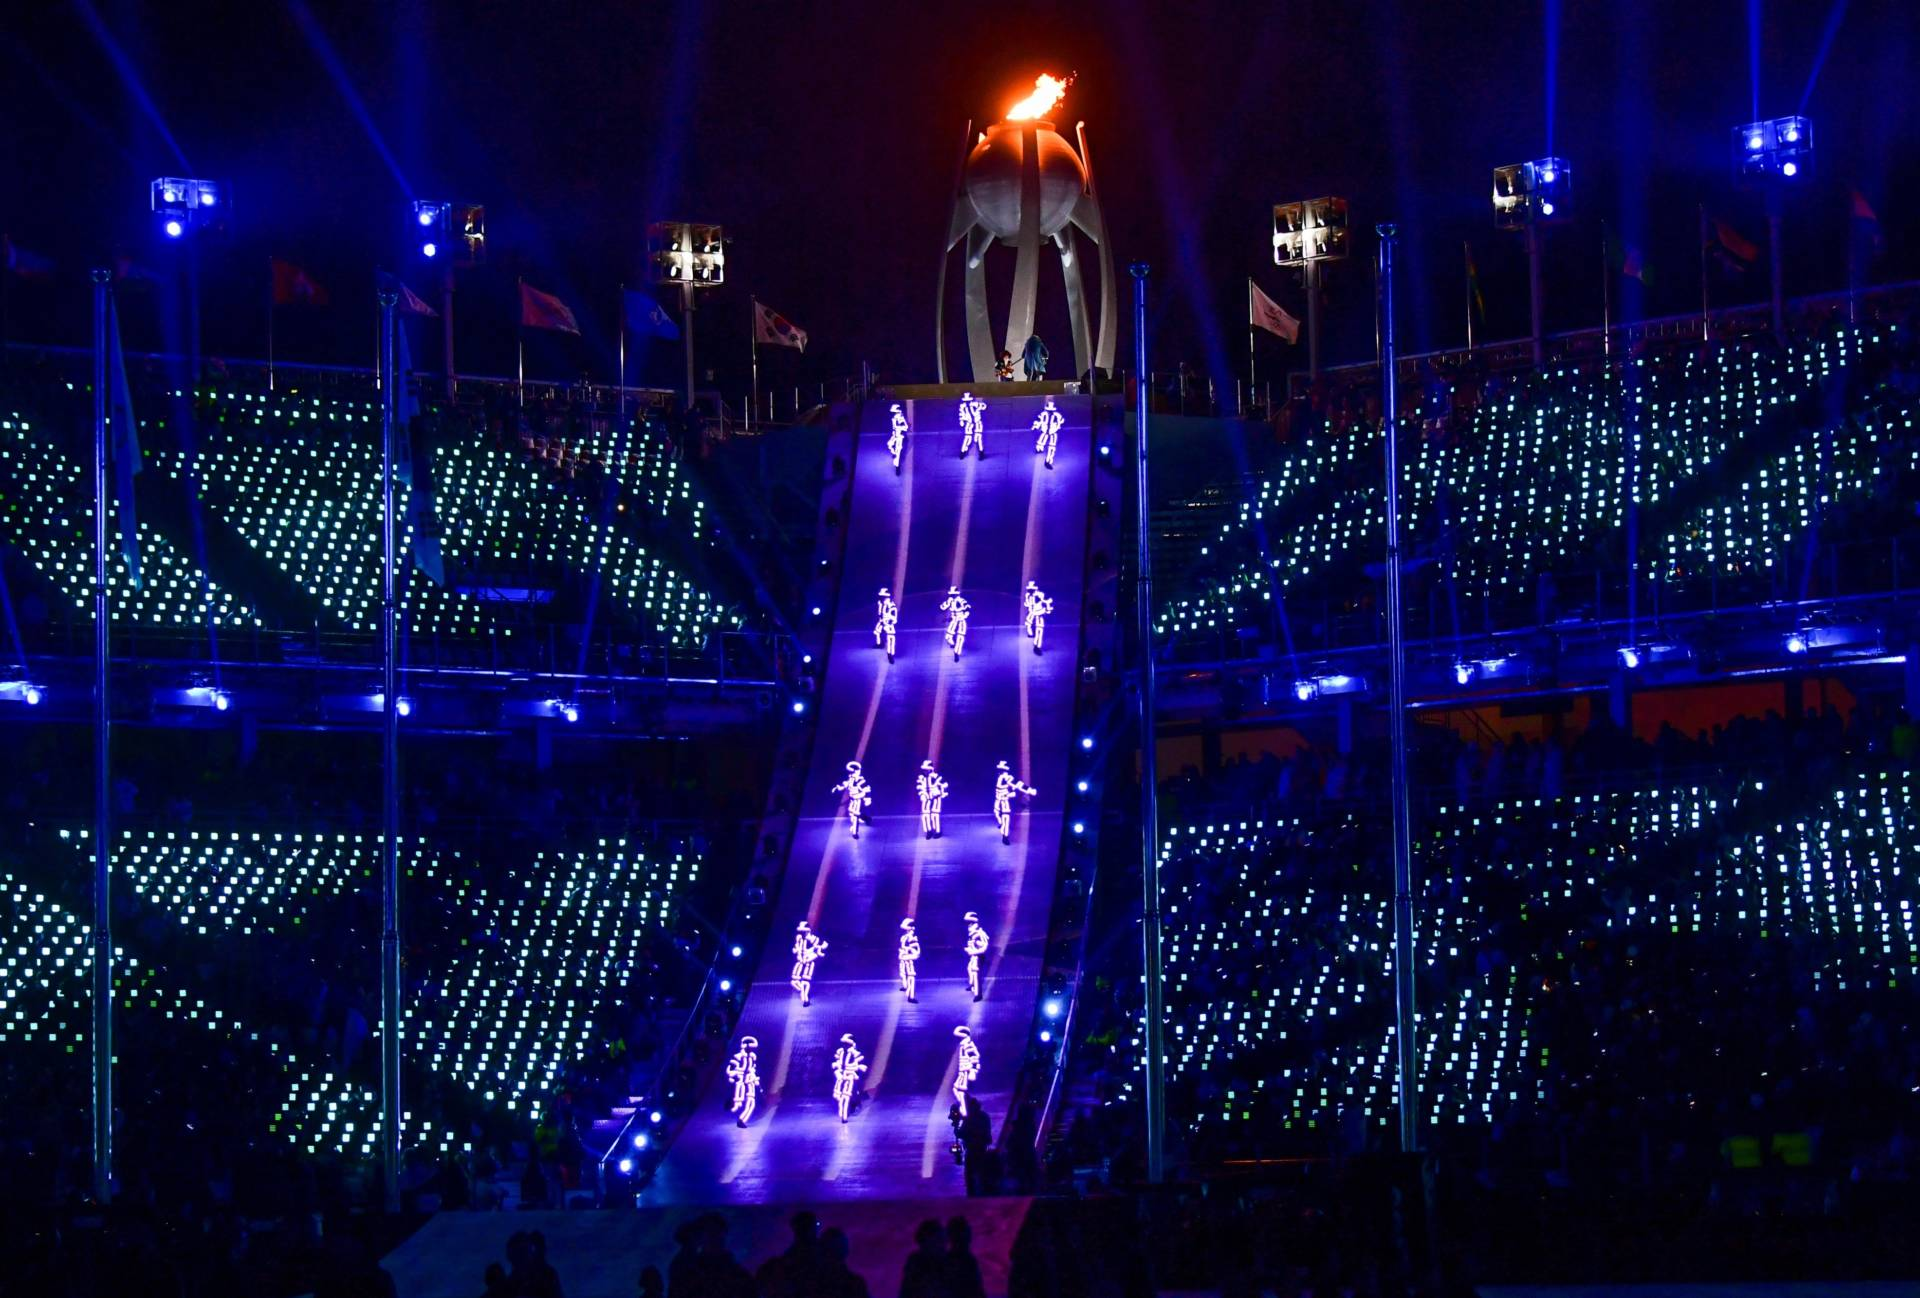 """Artists perform near the Olympic flame during the closing ceremony. """"Although parting is sad, we will remember Pyeongchang with beautiful memories,"""" said Lee Hee-beom, the Pyeongchang Olympics organizing committee president.  Martin Bernetti/AFP/Getty Images"""